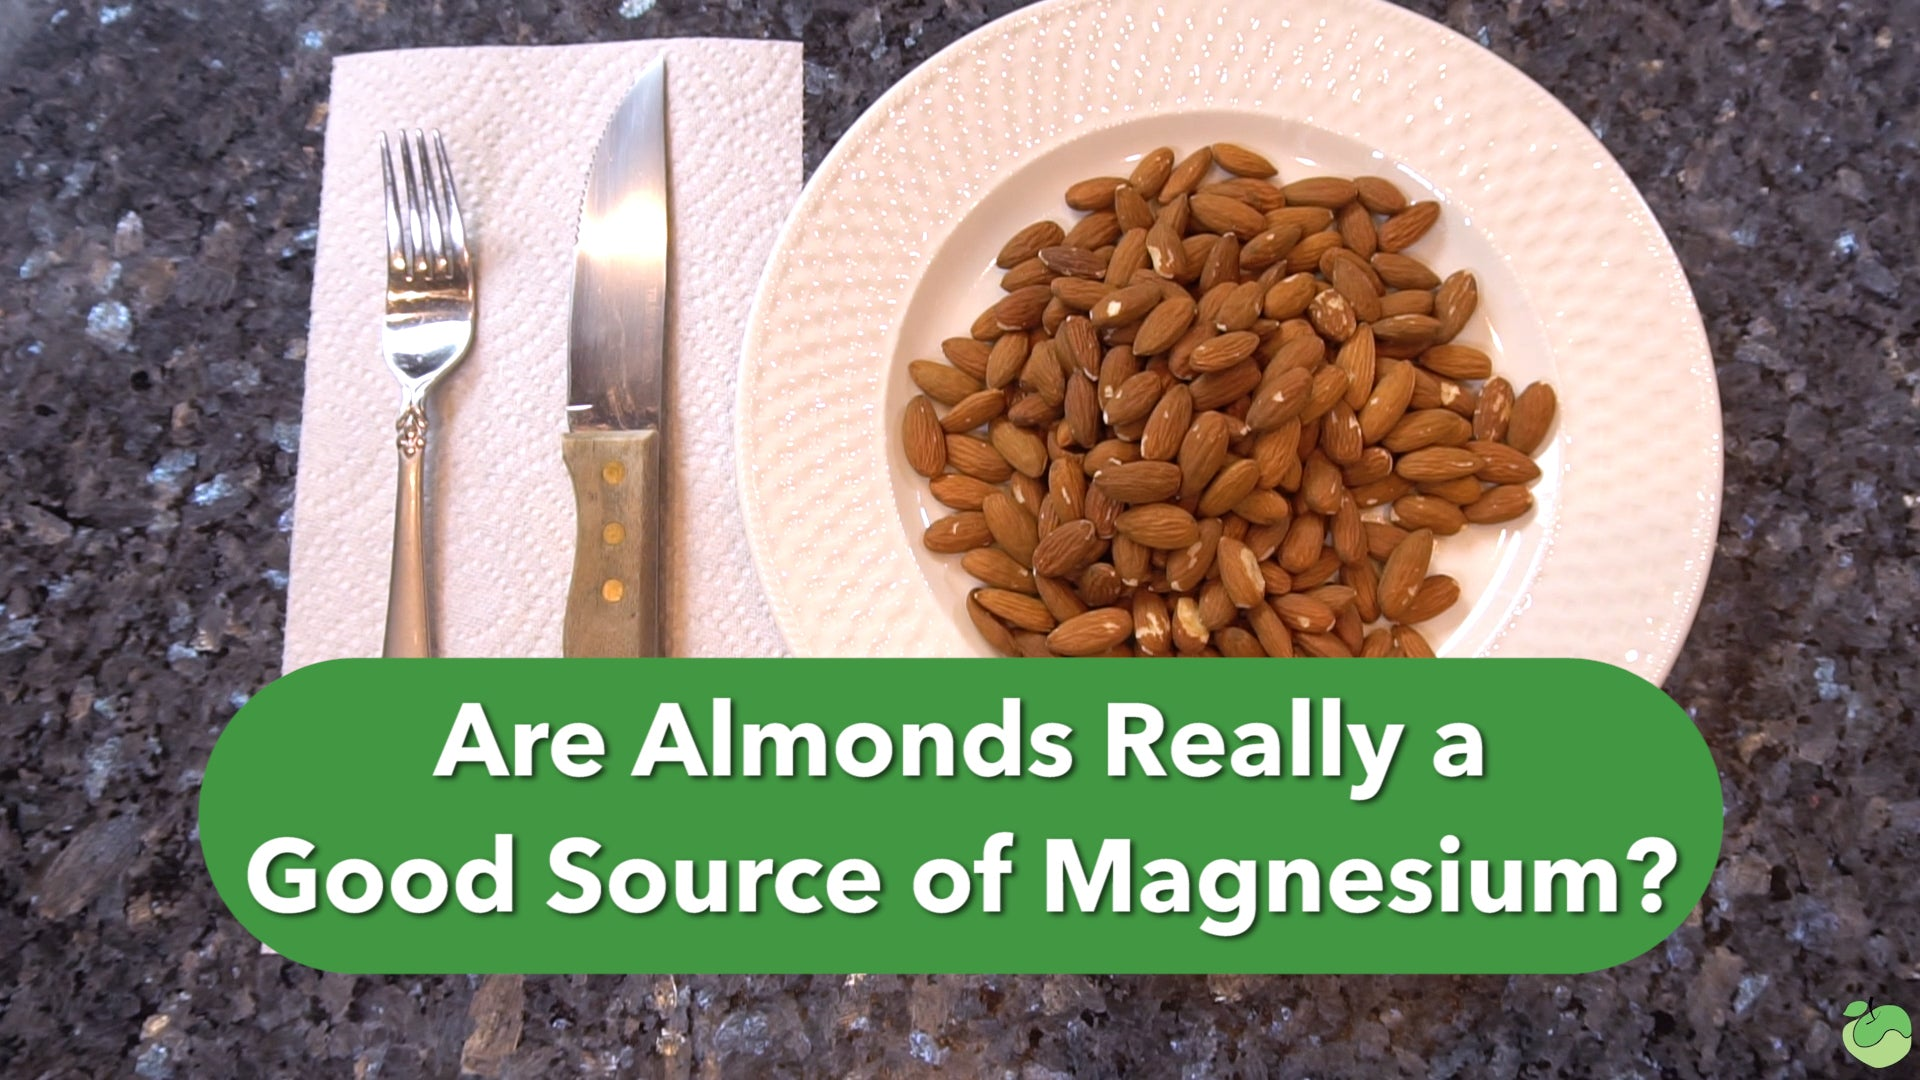 Are Almonds REALLY a Good Source of Magnesium?